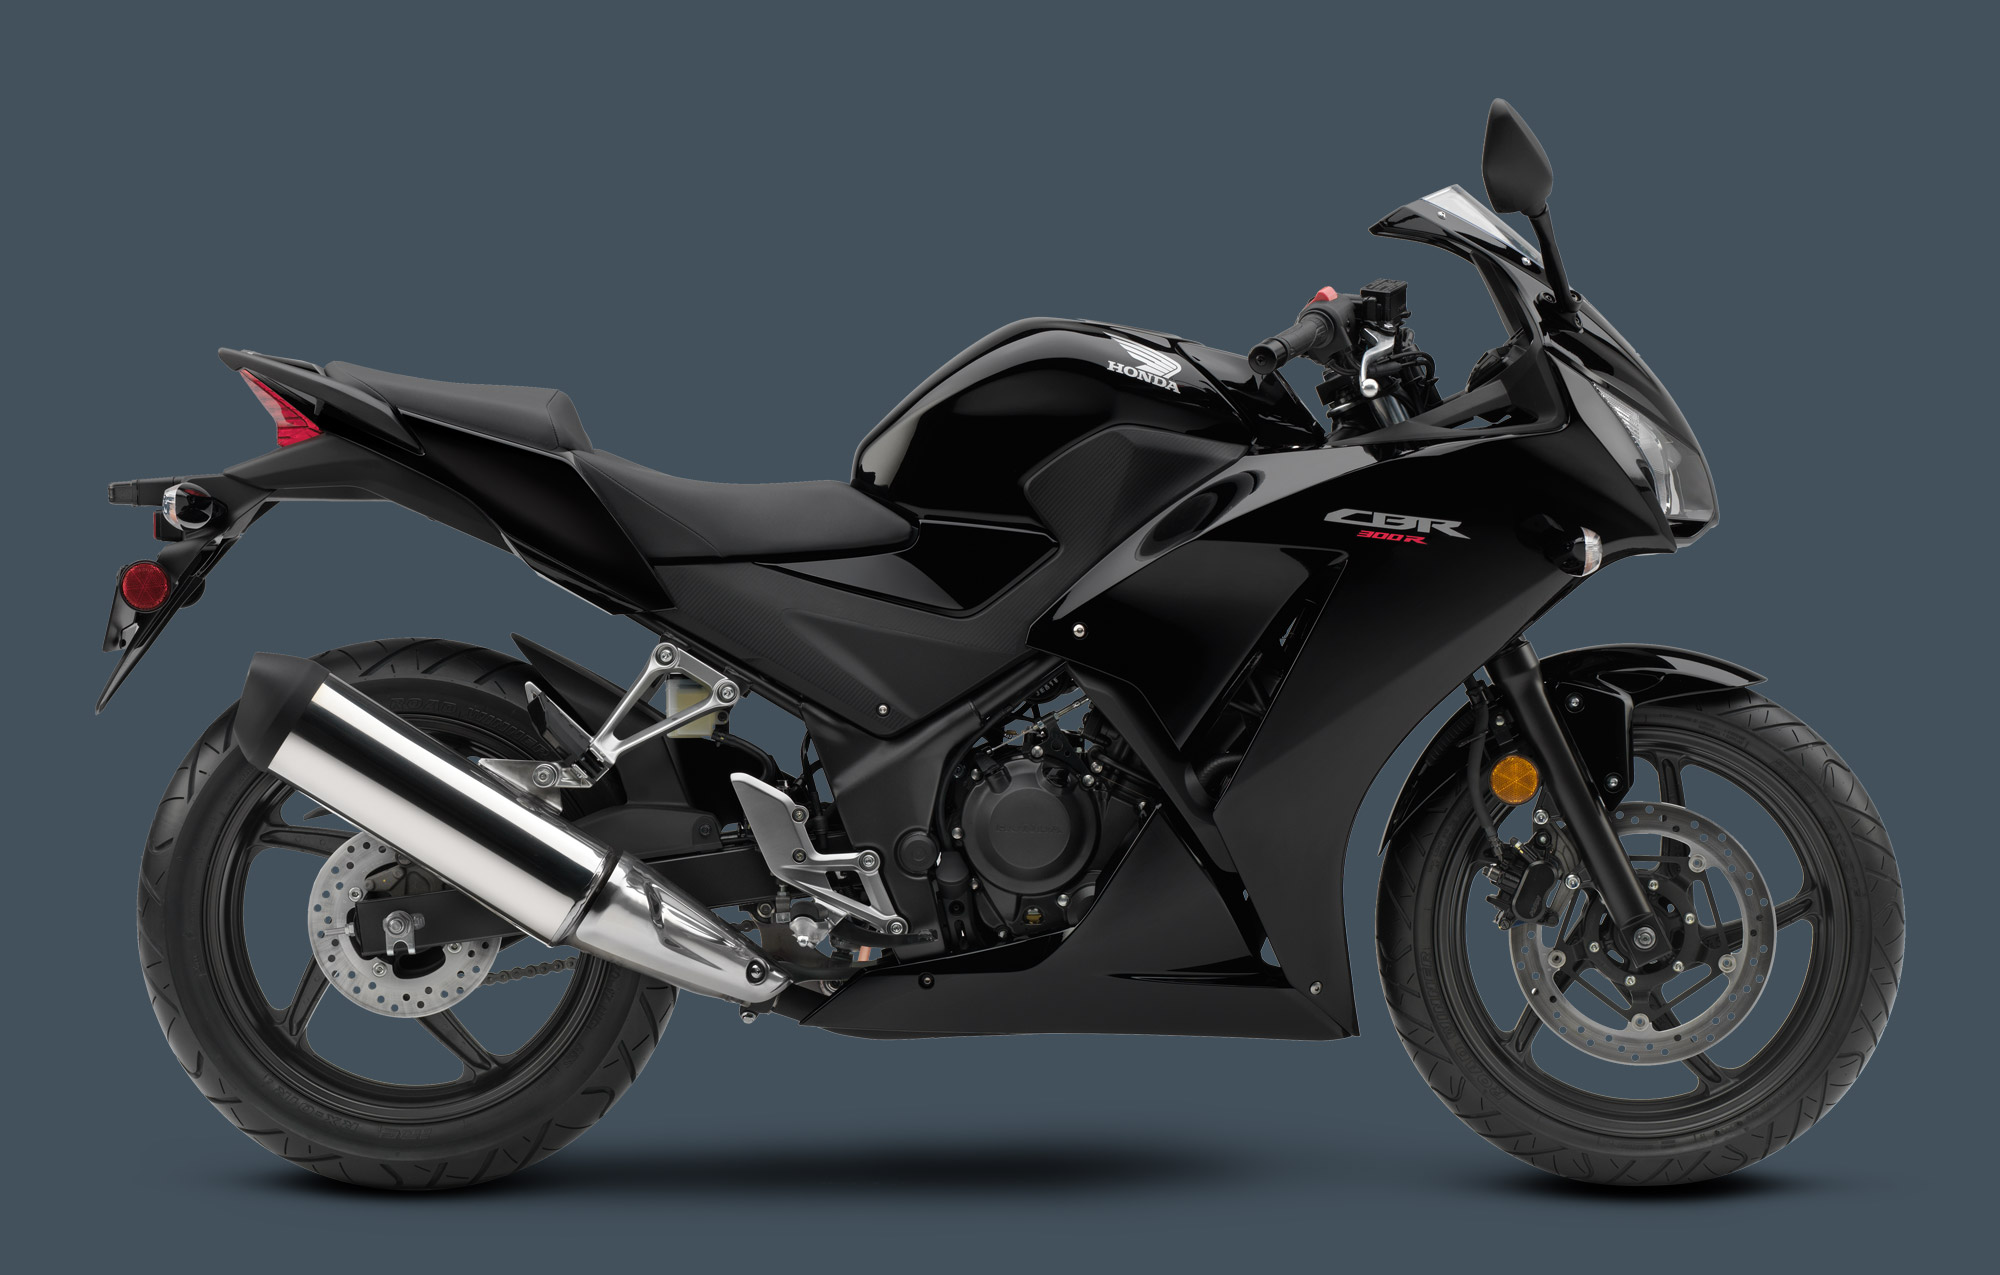 2015 Honda Cbr300r Confirmed For Delivery Autoevolution